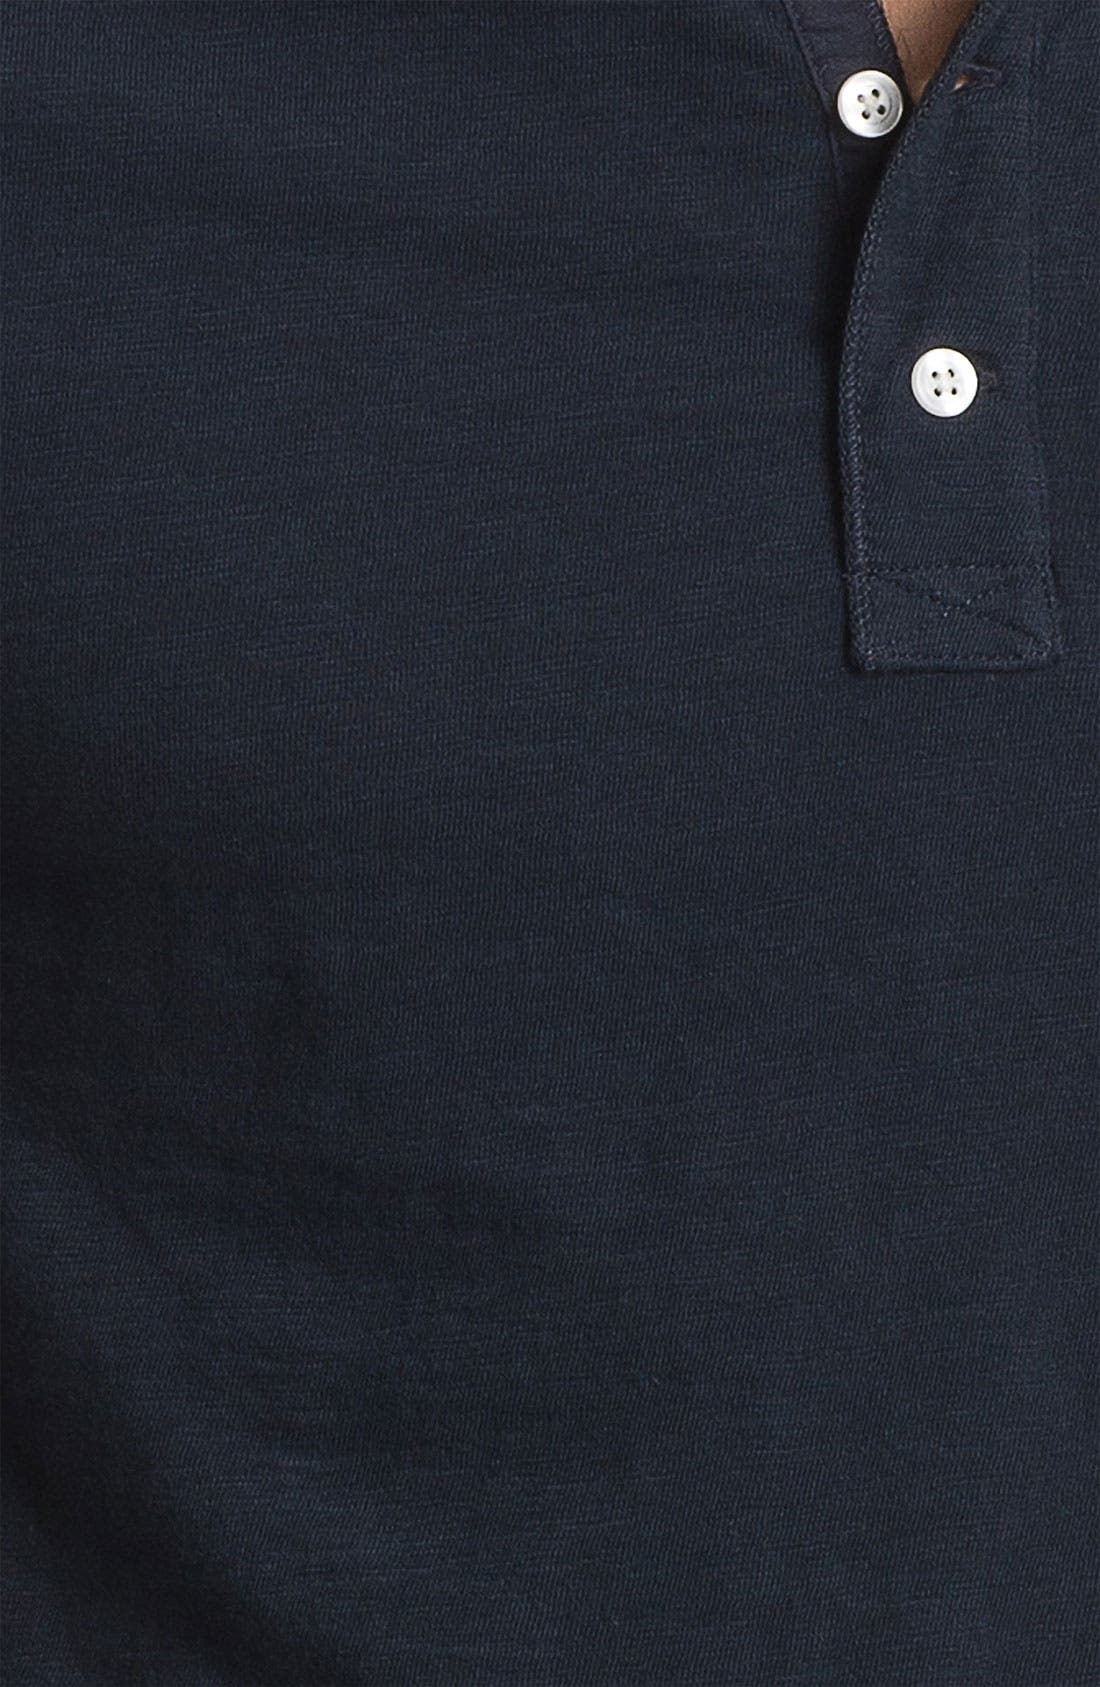 Alternate Image 3  - Vince Slubbed Cotton Henley T-Shirt